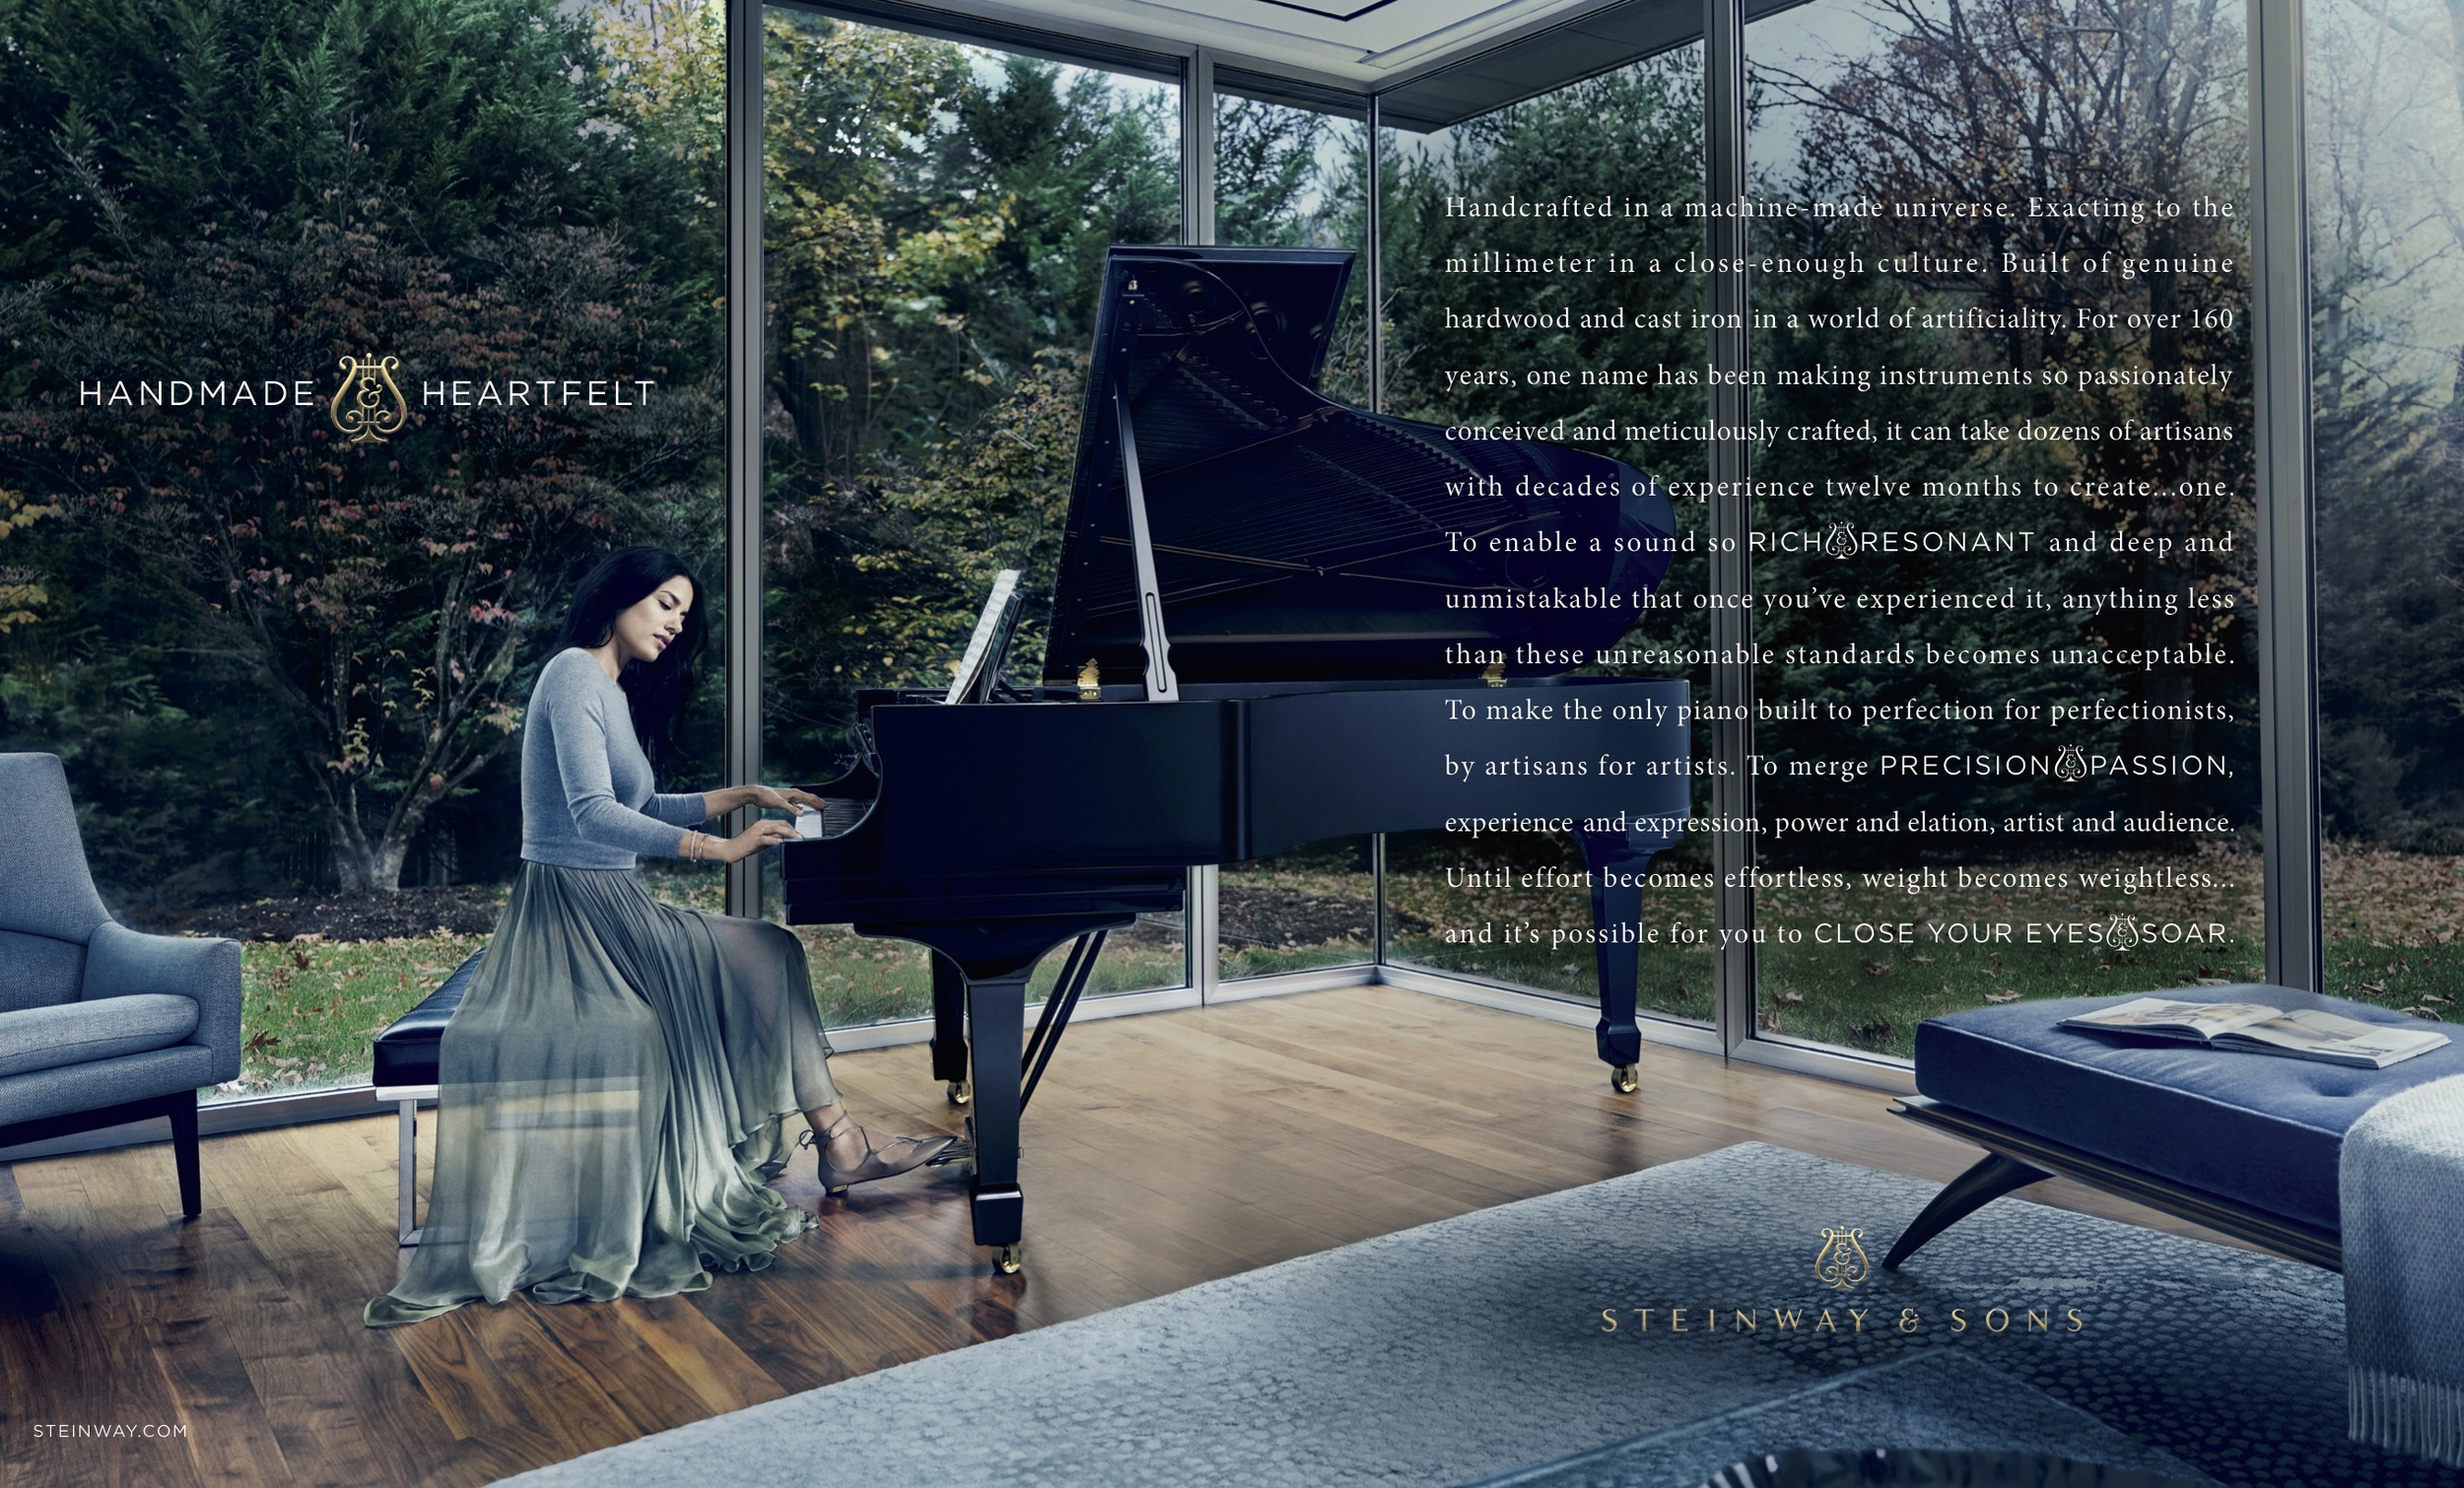 Steinway & Sons - Miller Mobley